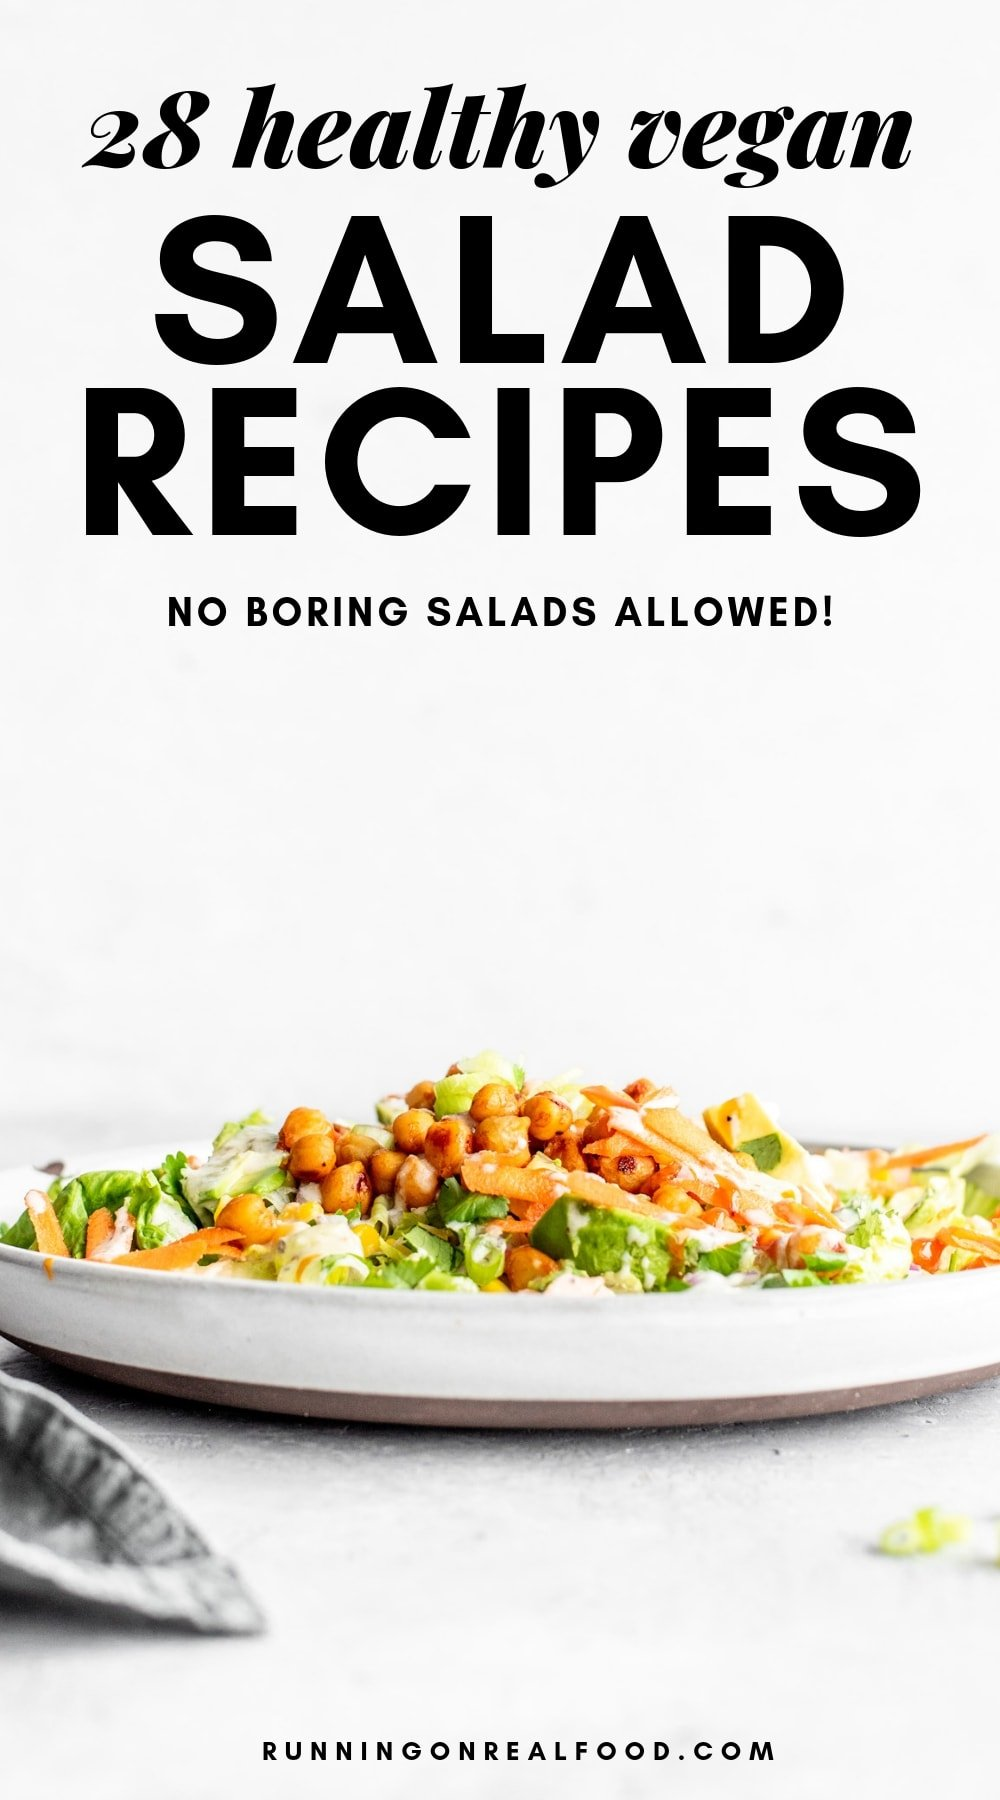 Healthy Vegan Salad Recipes from Running on Real Food